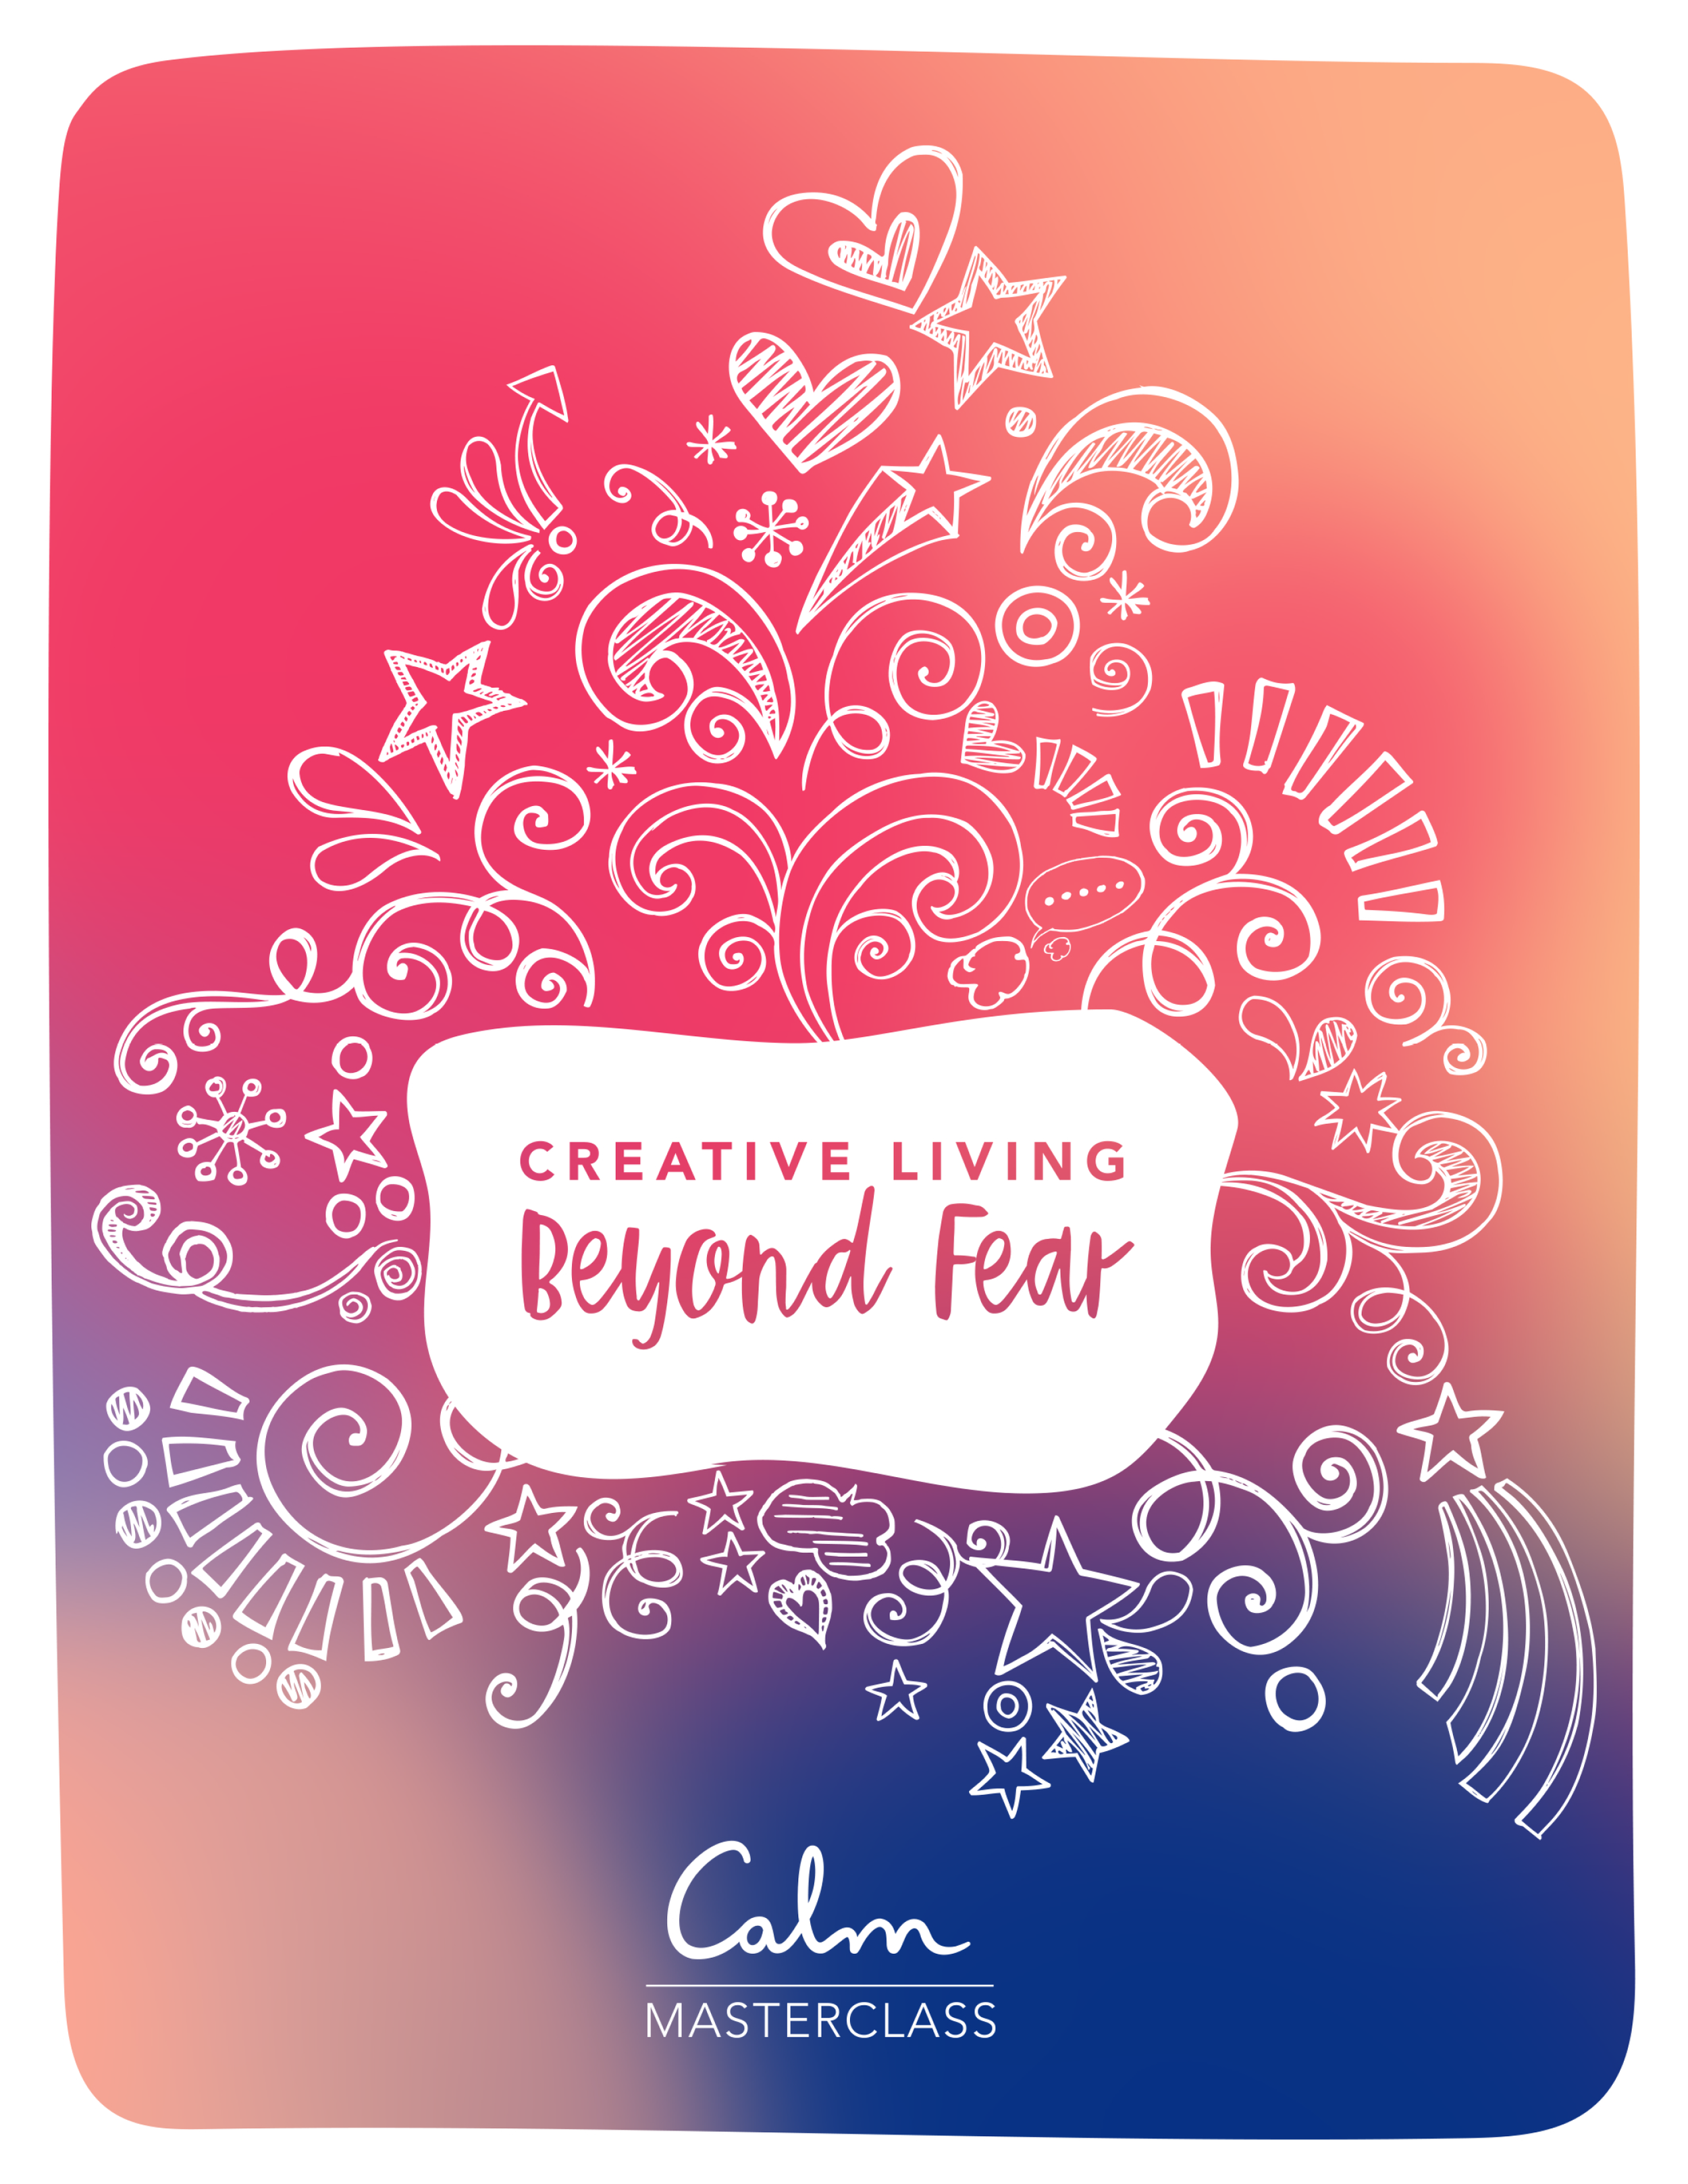 CreativeLivingJournal_Page_01.png